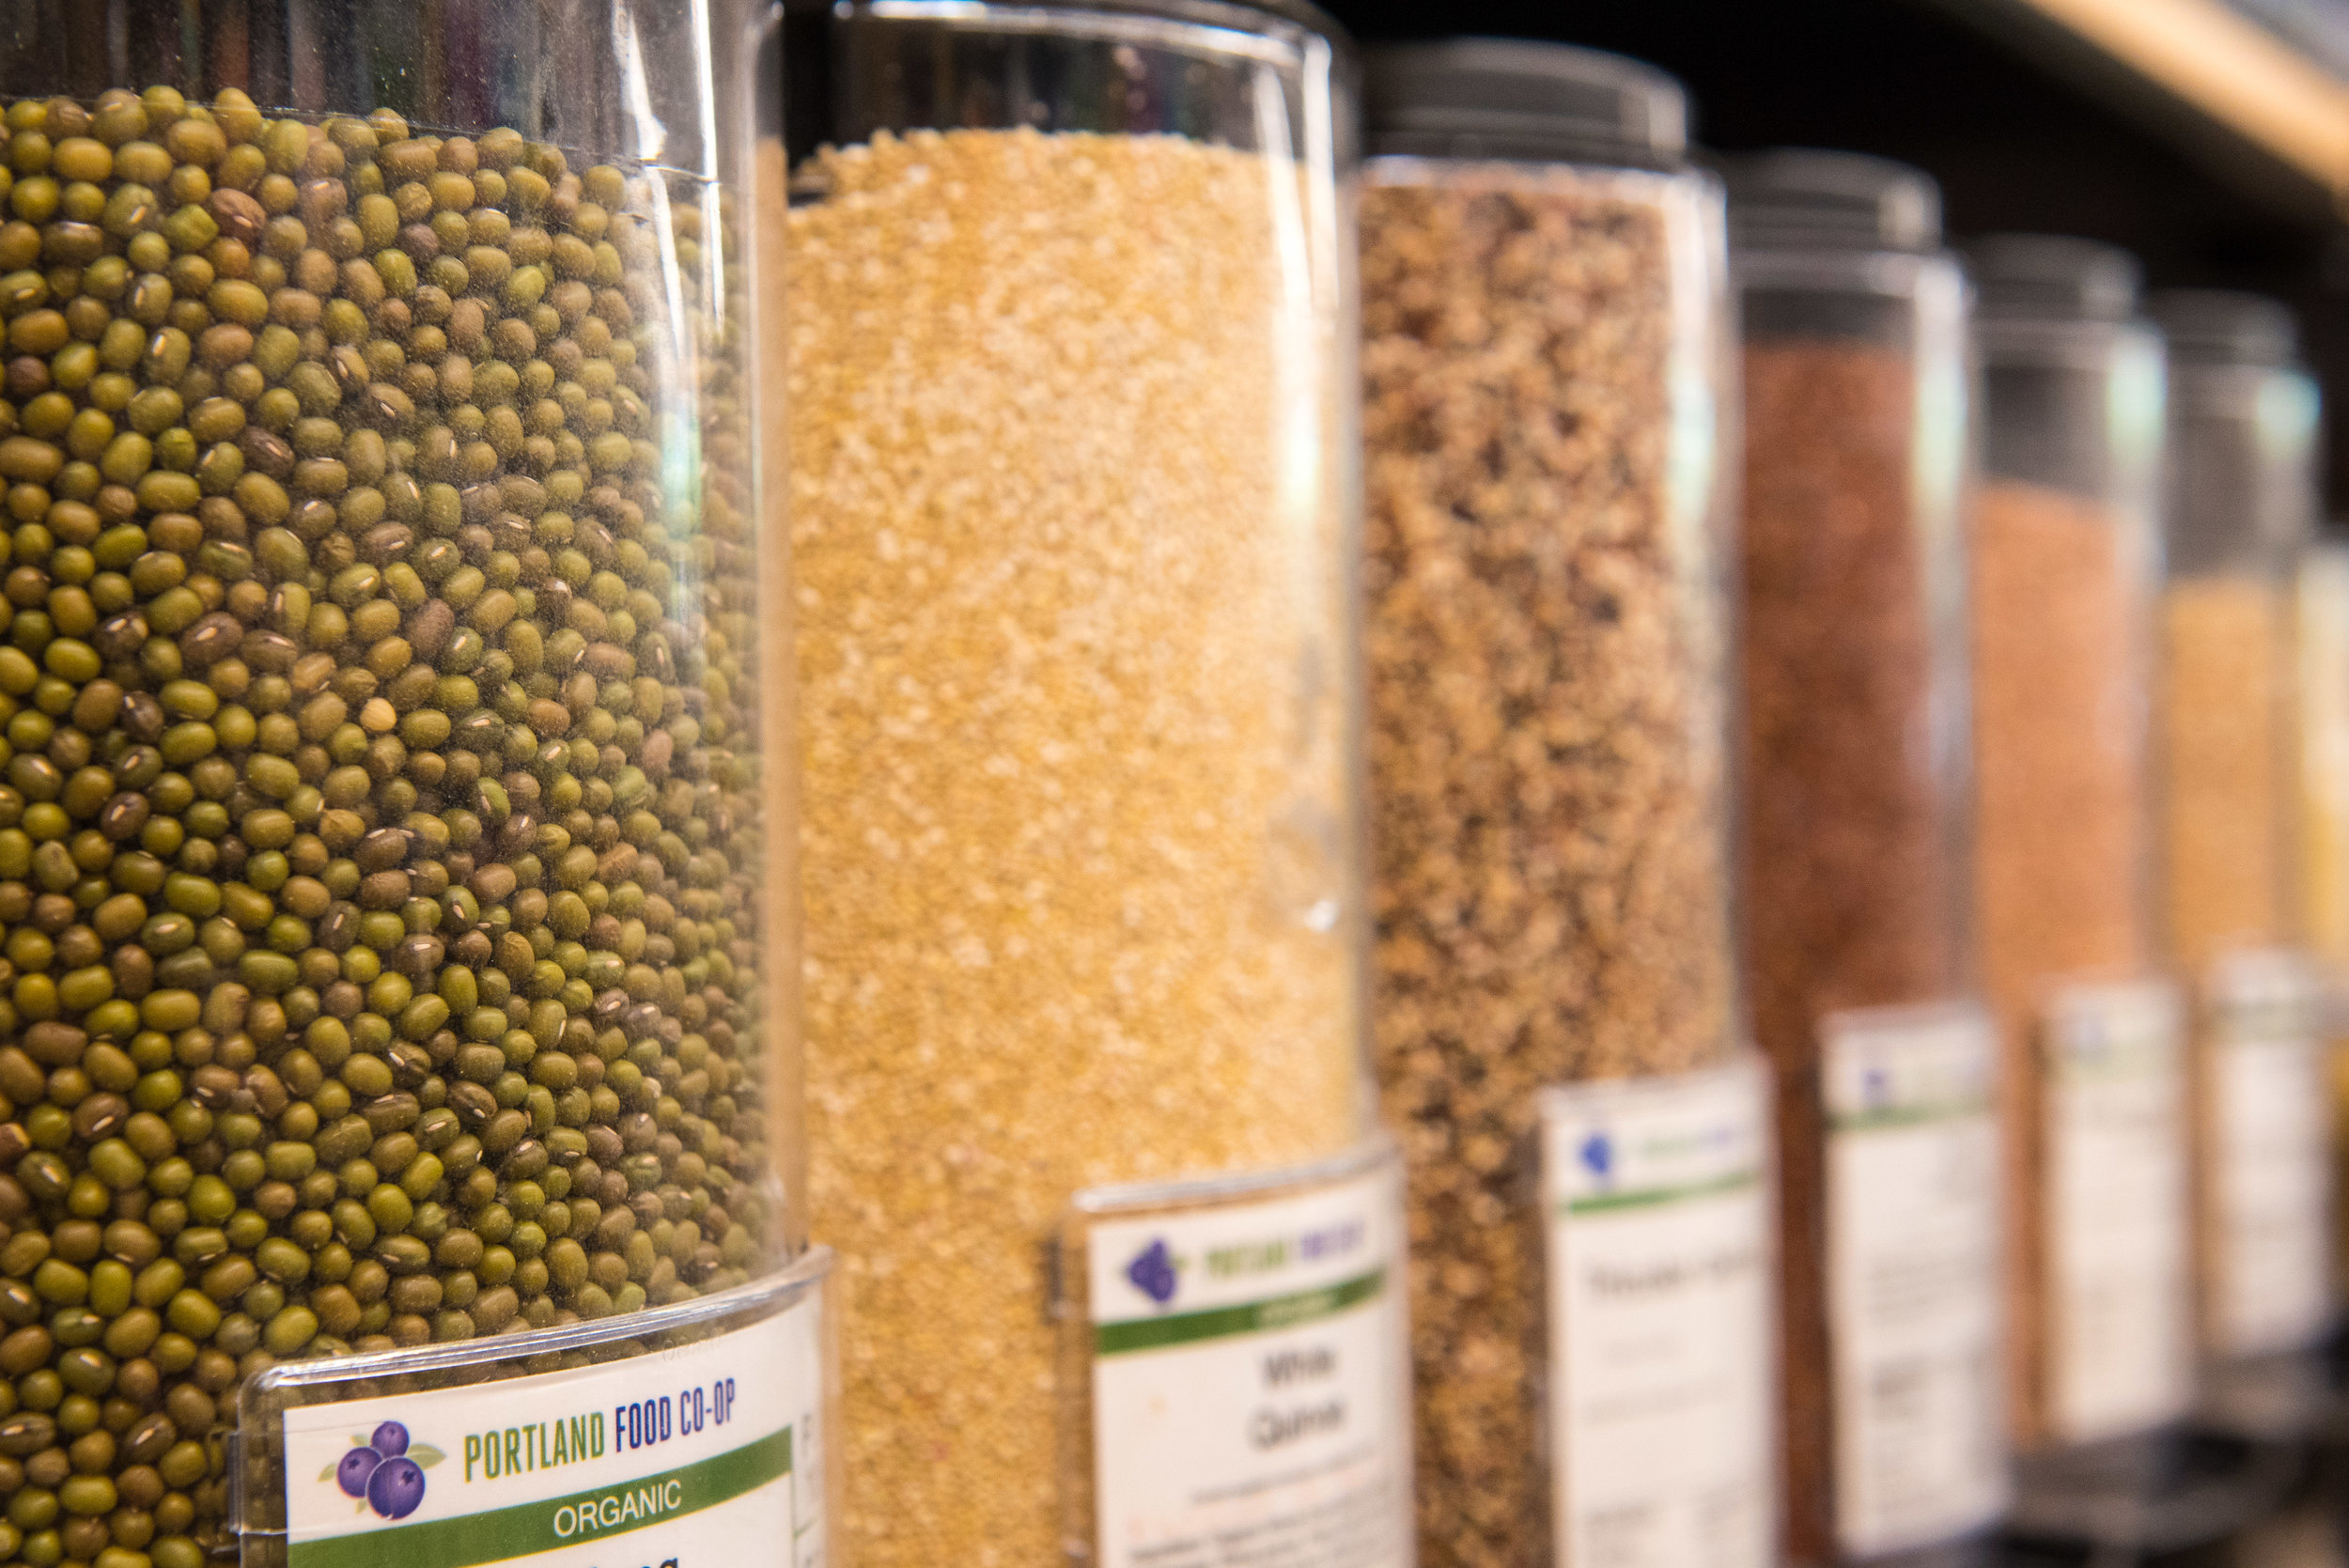 Bulk - Our bulk section is a robust mix of over 100 varieties of dried goods including beans, legumes, nuts, seeds, cereals, flours, fruit, sweets, and coffee.